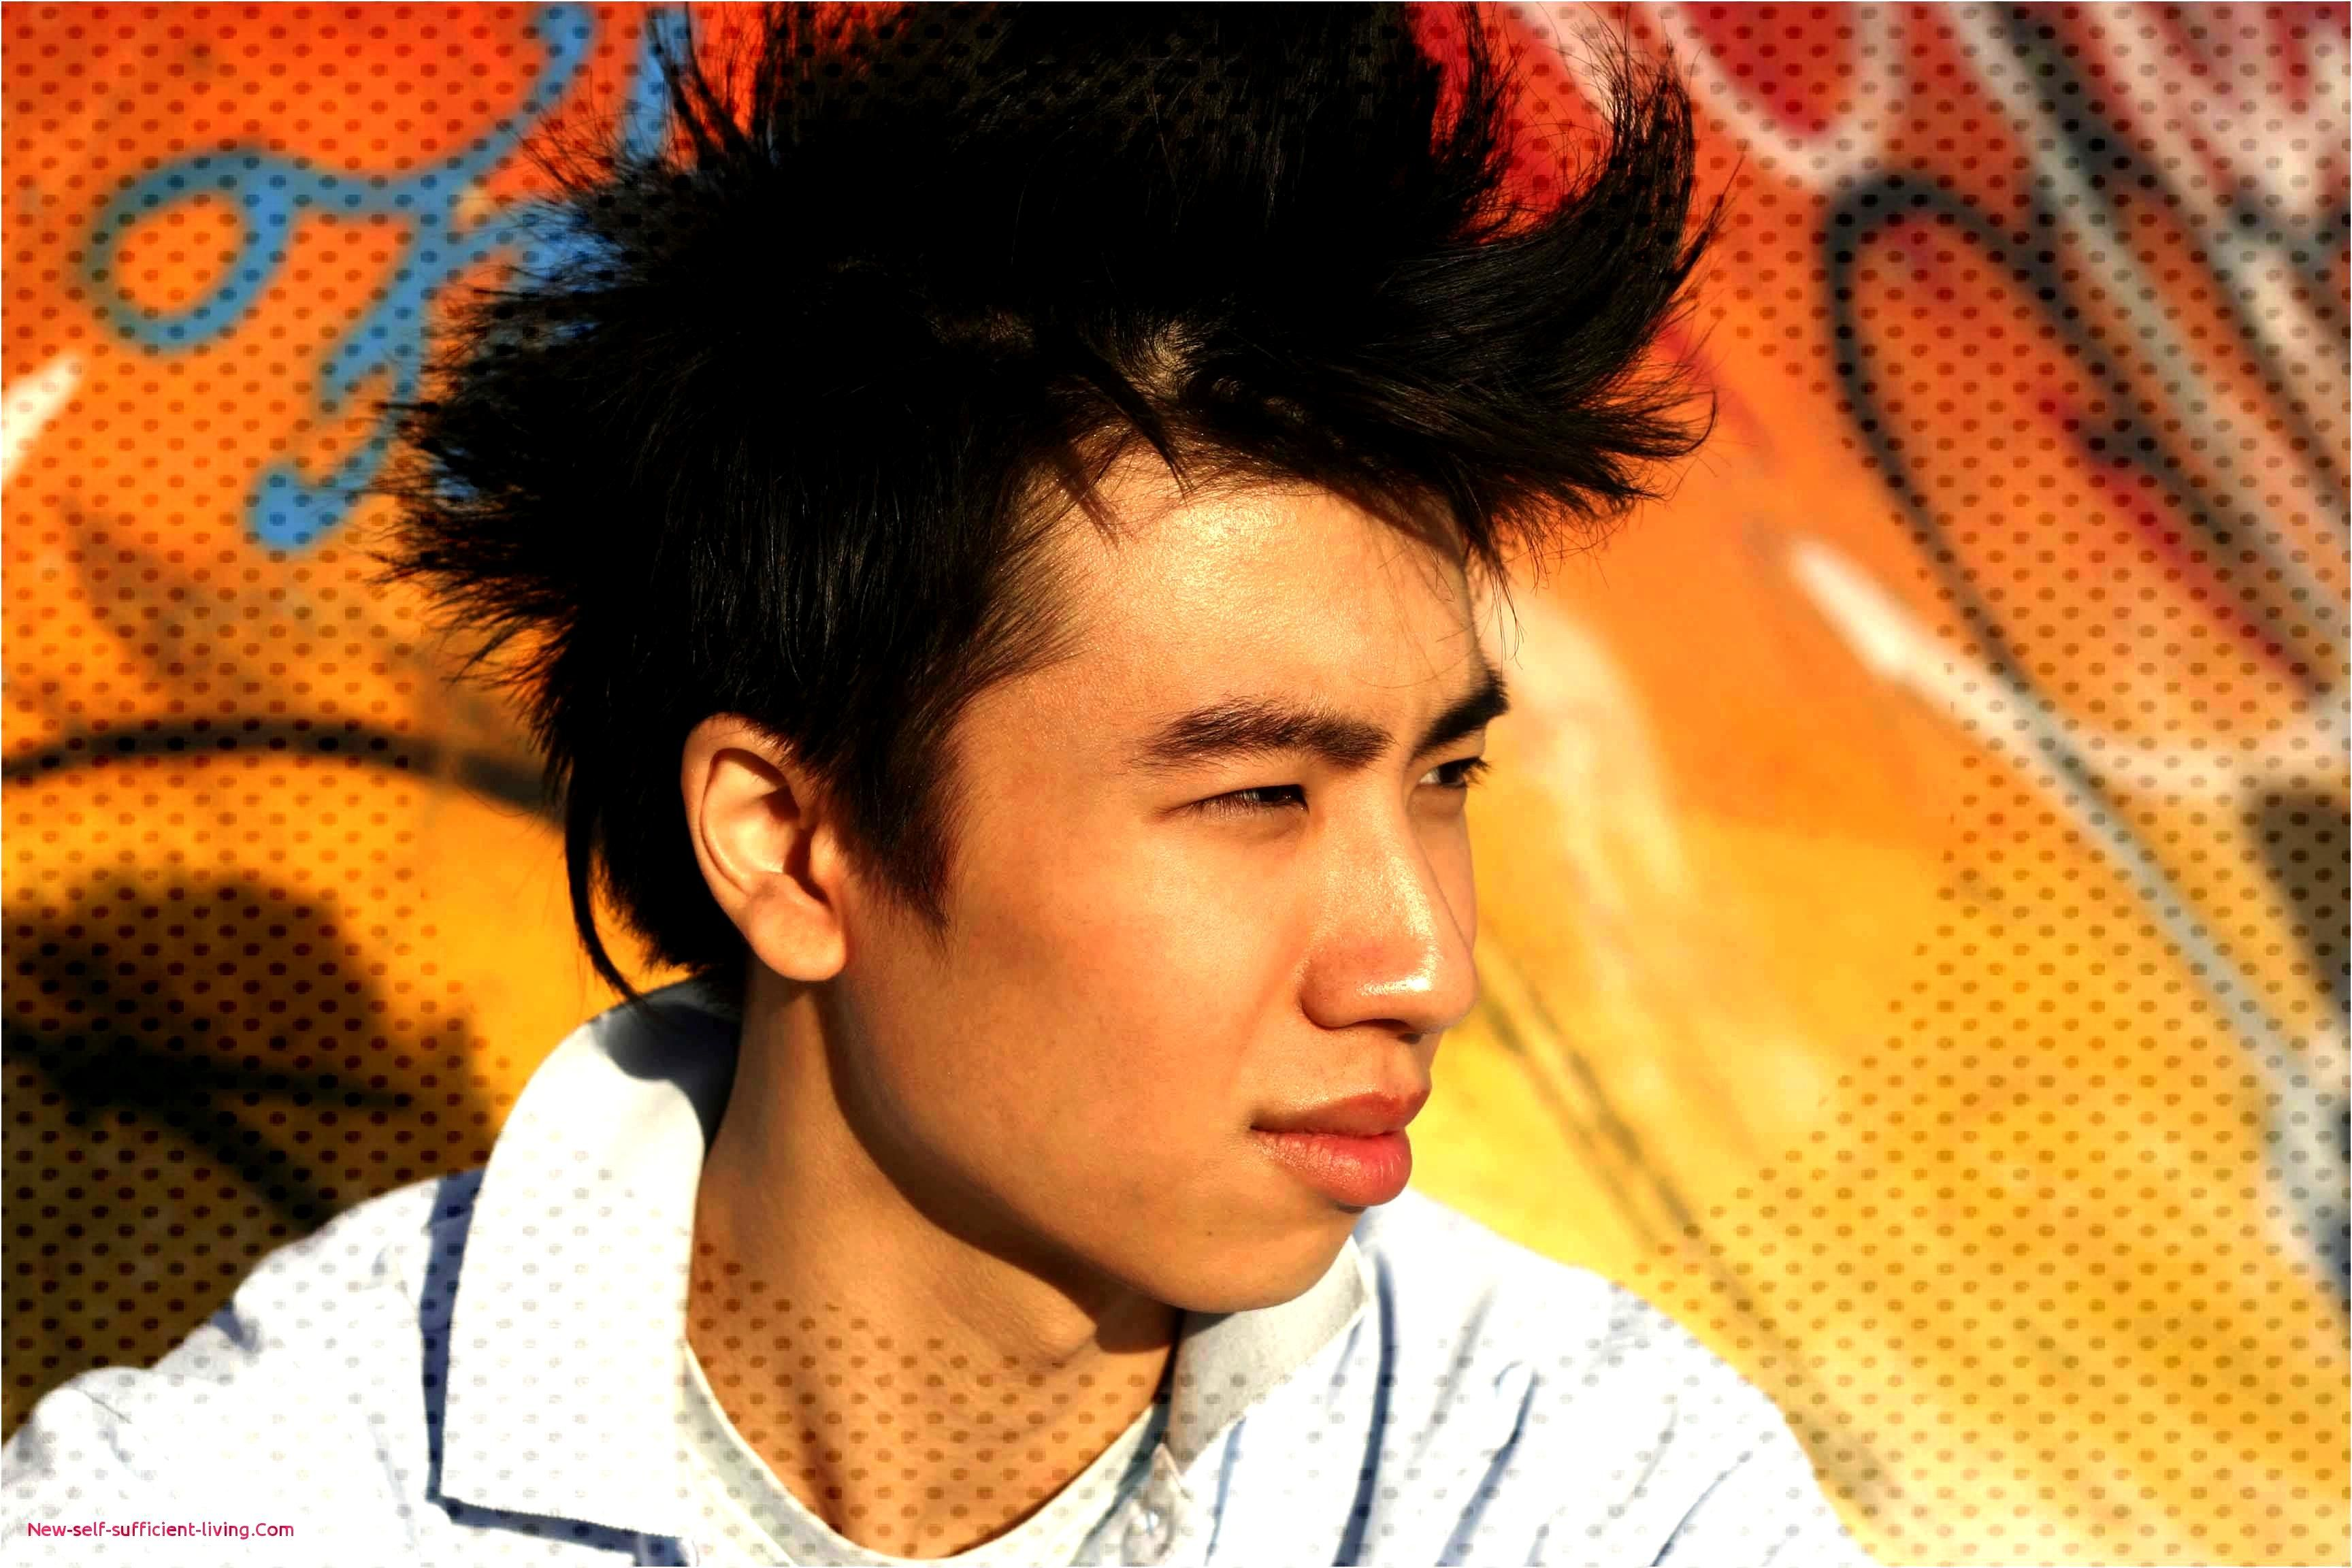 Awesome Punk Hair for Men - People who have dark-colored fluorescent Afro hair d..., Awesome Punk